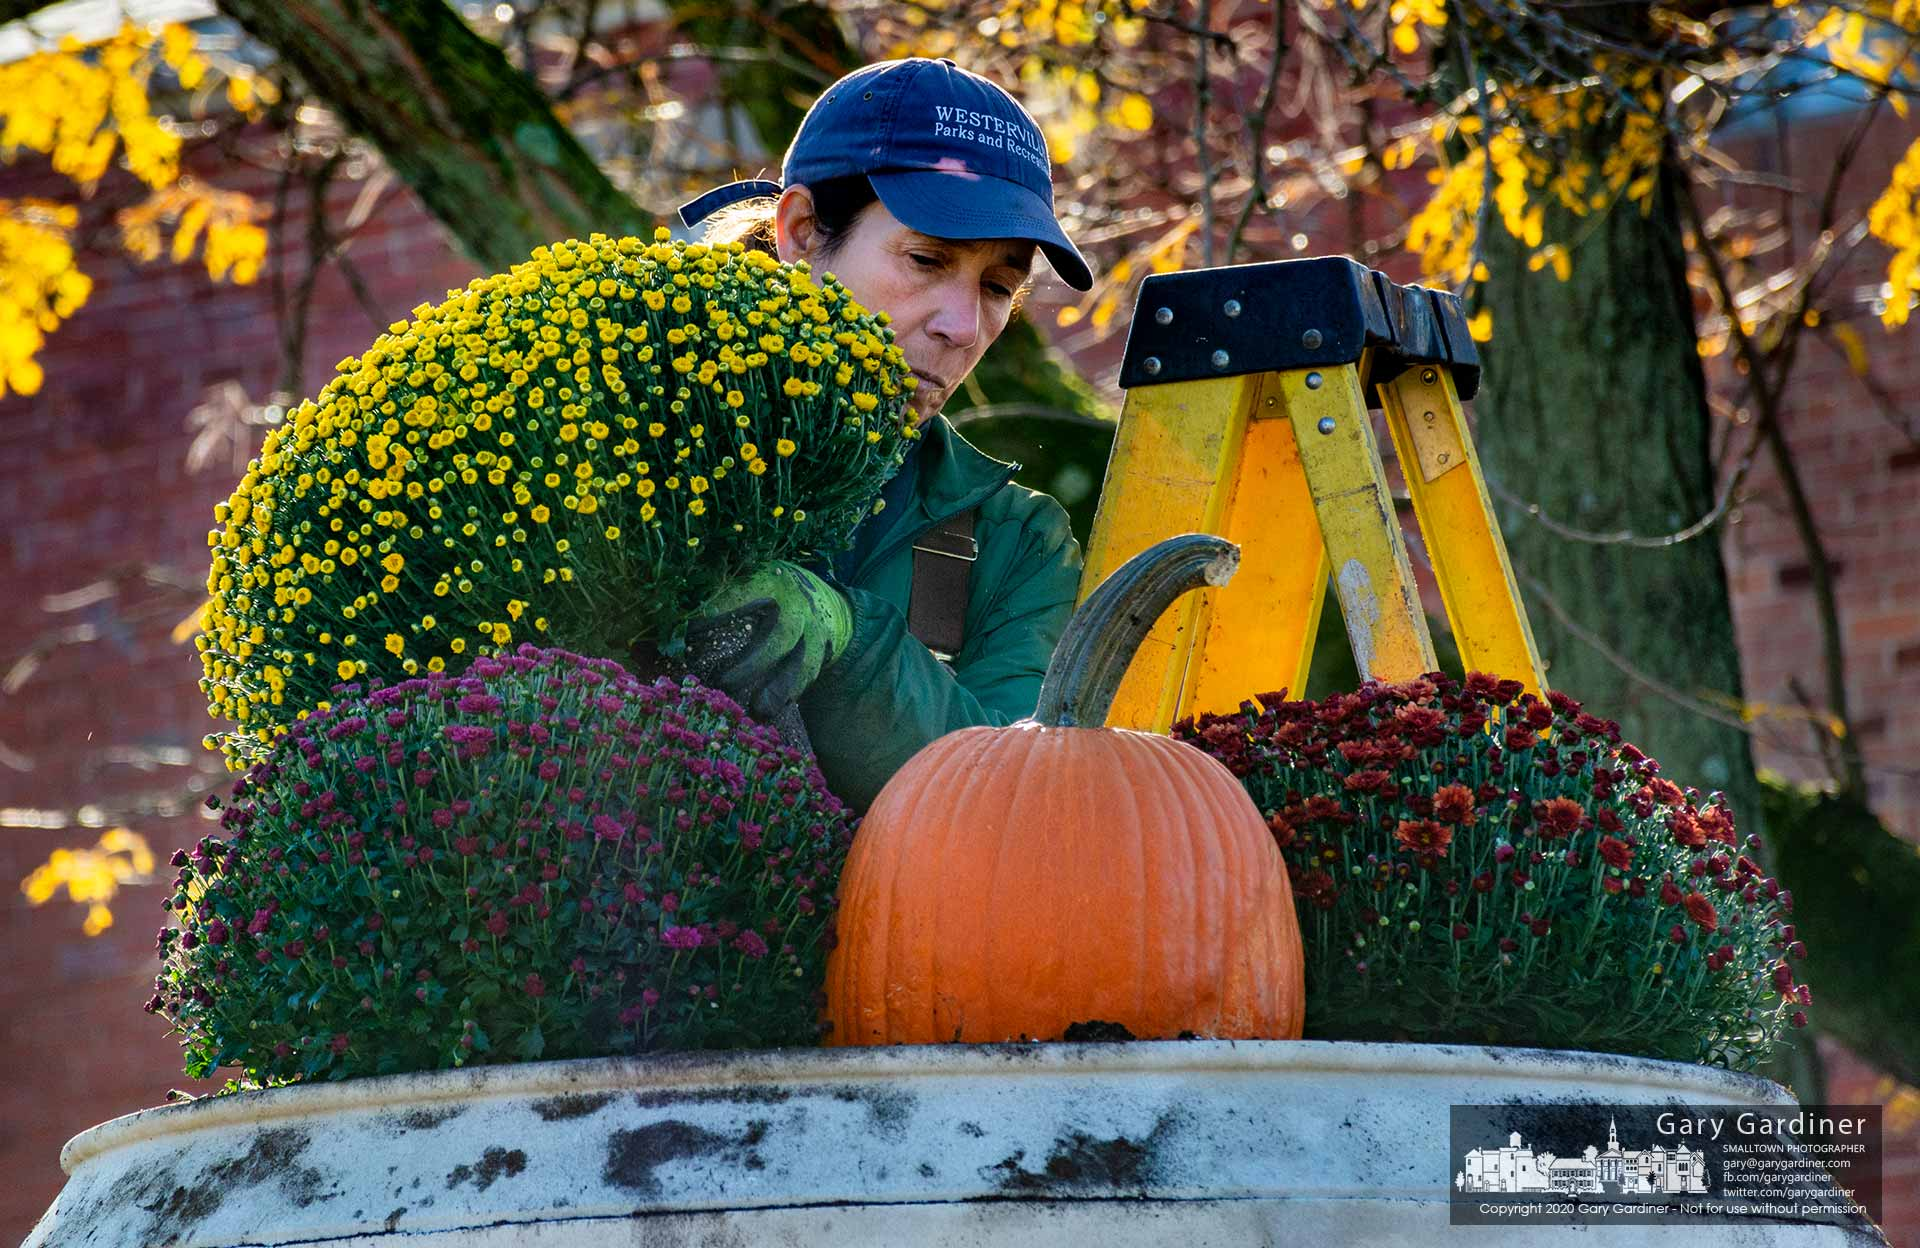 A Parks and Recreation worker install pumpkins and chrysanthemums in the planter in Rotary Park at State and Home Streets. My Final Photo for Oct. 16, 2020.